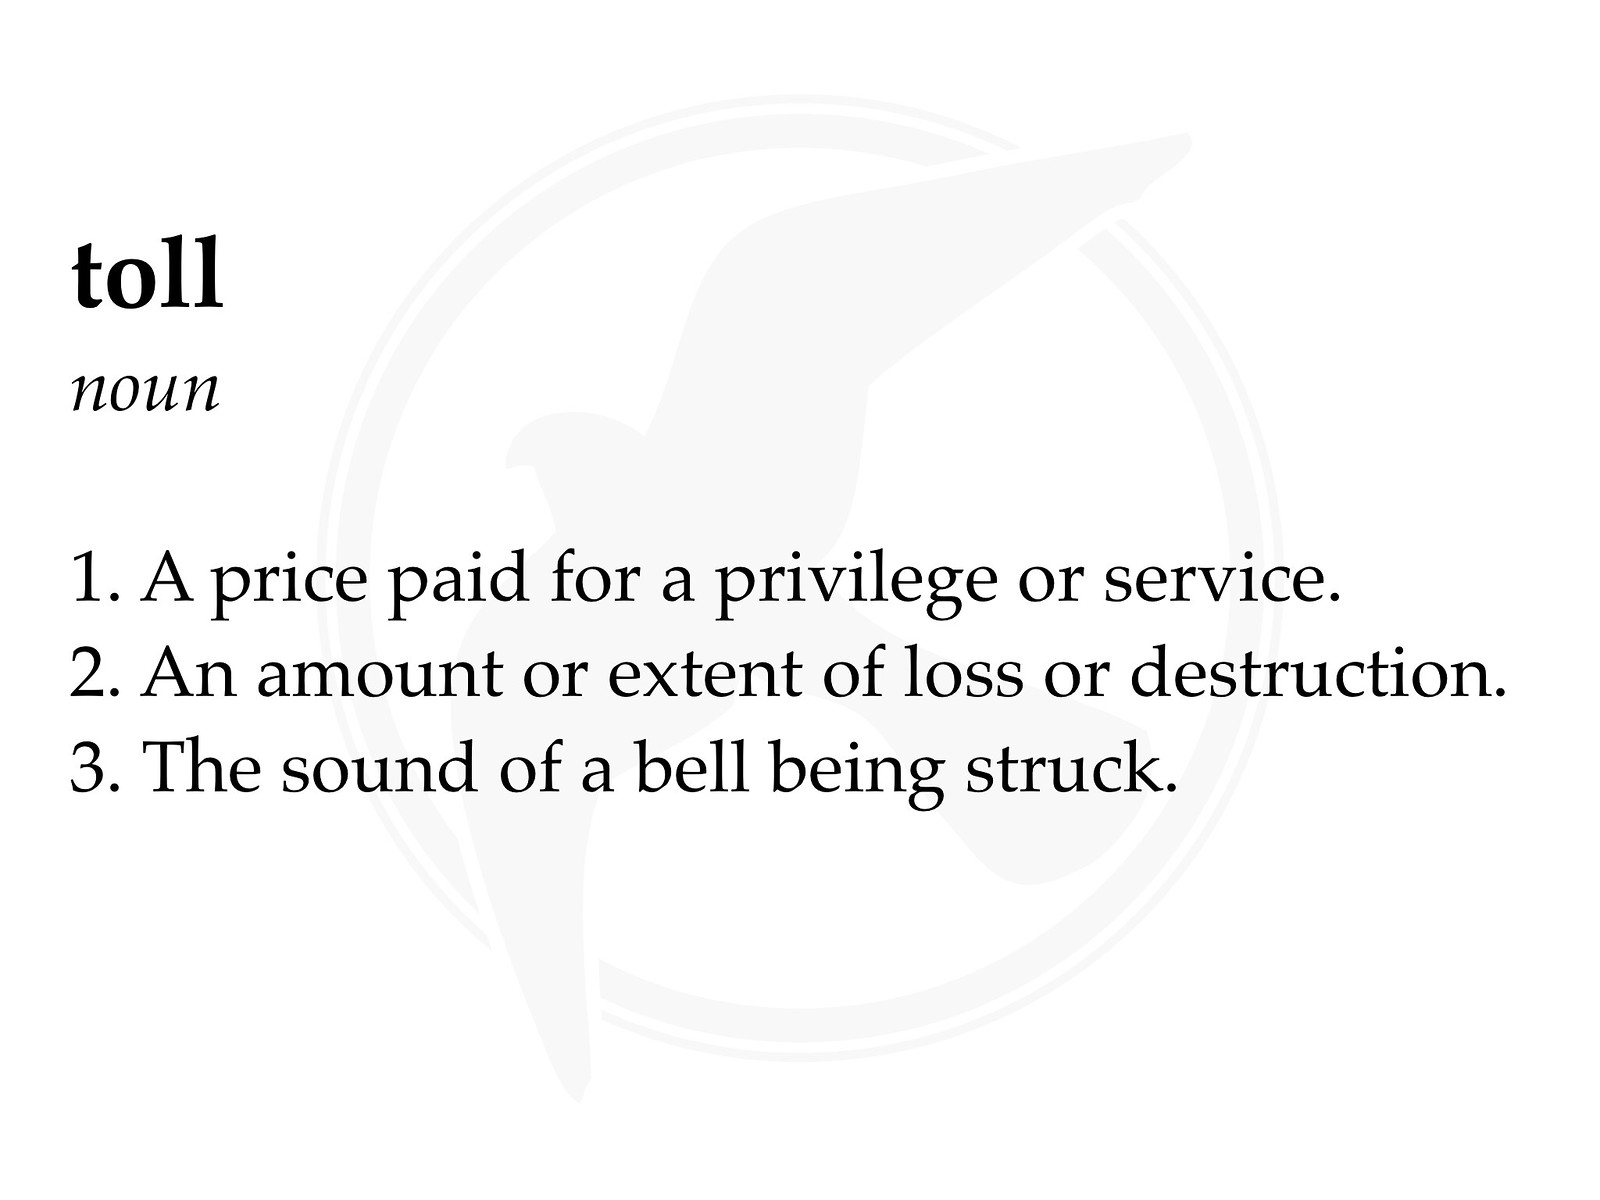 Definition of the noun 'toll': 1. A price paid for a privilege or service. 2. An amount or extent of loss or destruction. 3. The sound of a bell being struck.